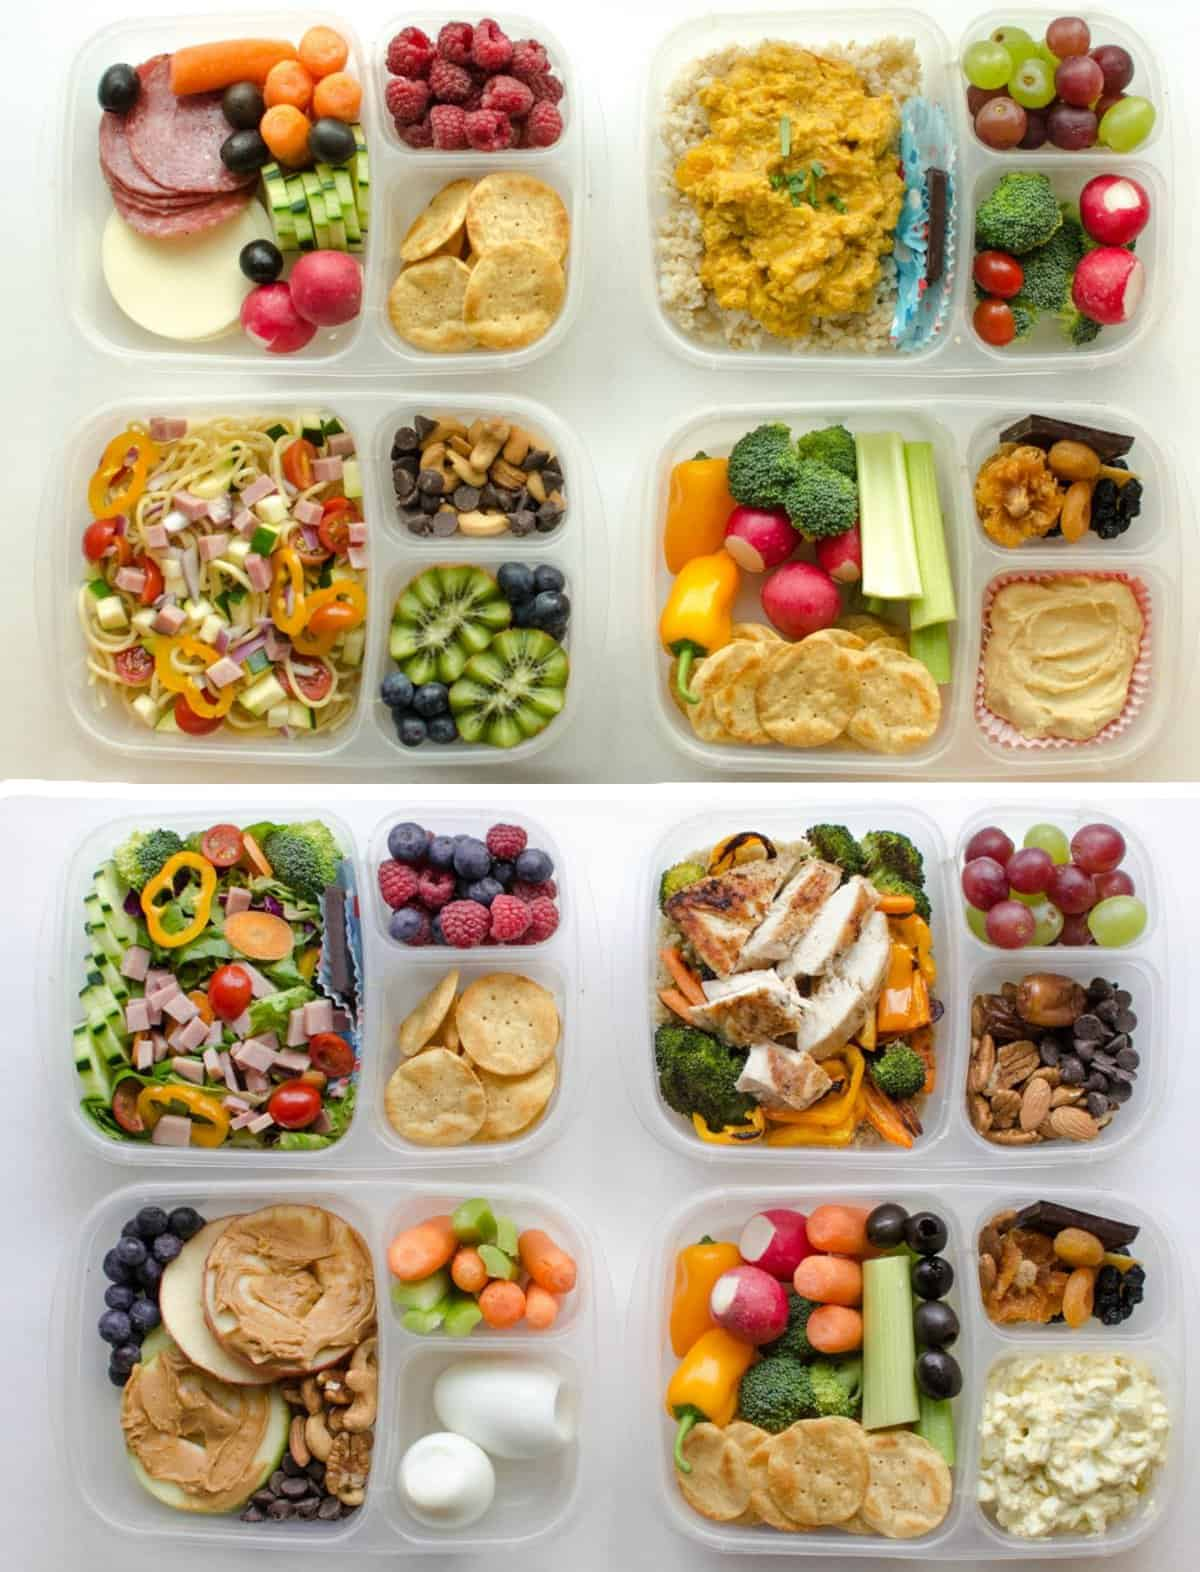 8 Wholesome Lunch Box Ideas For Adults Or Kids